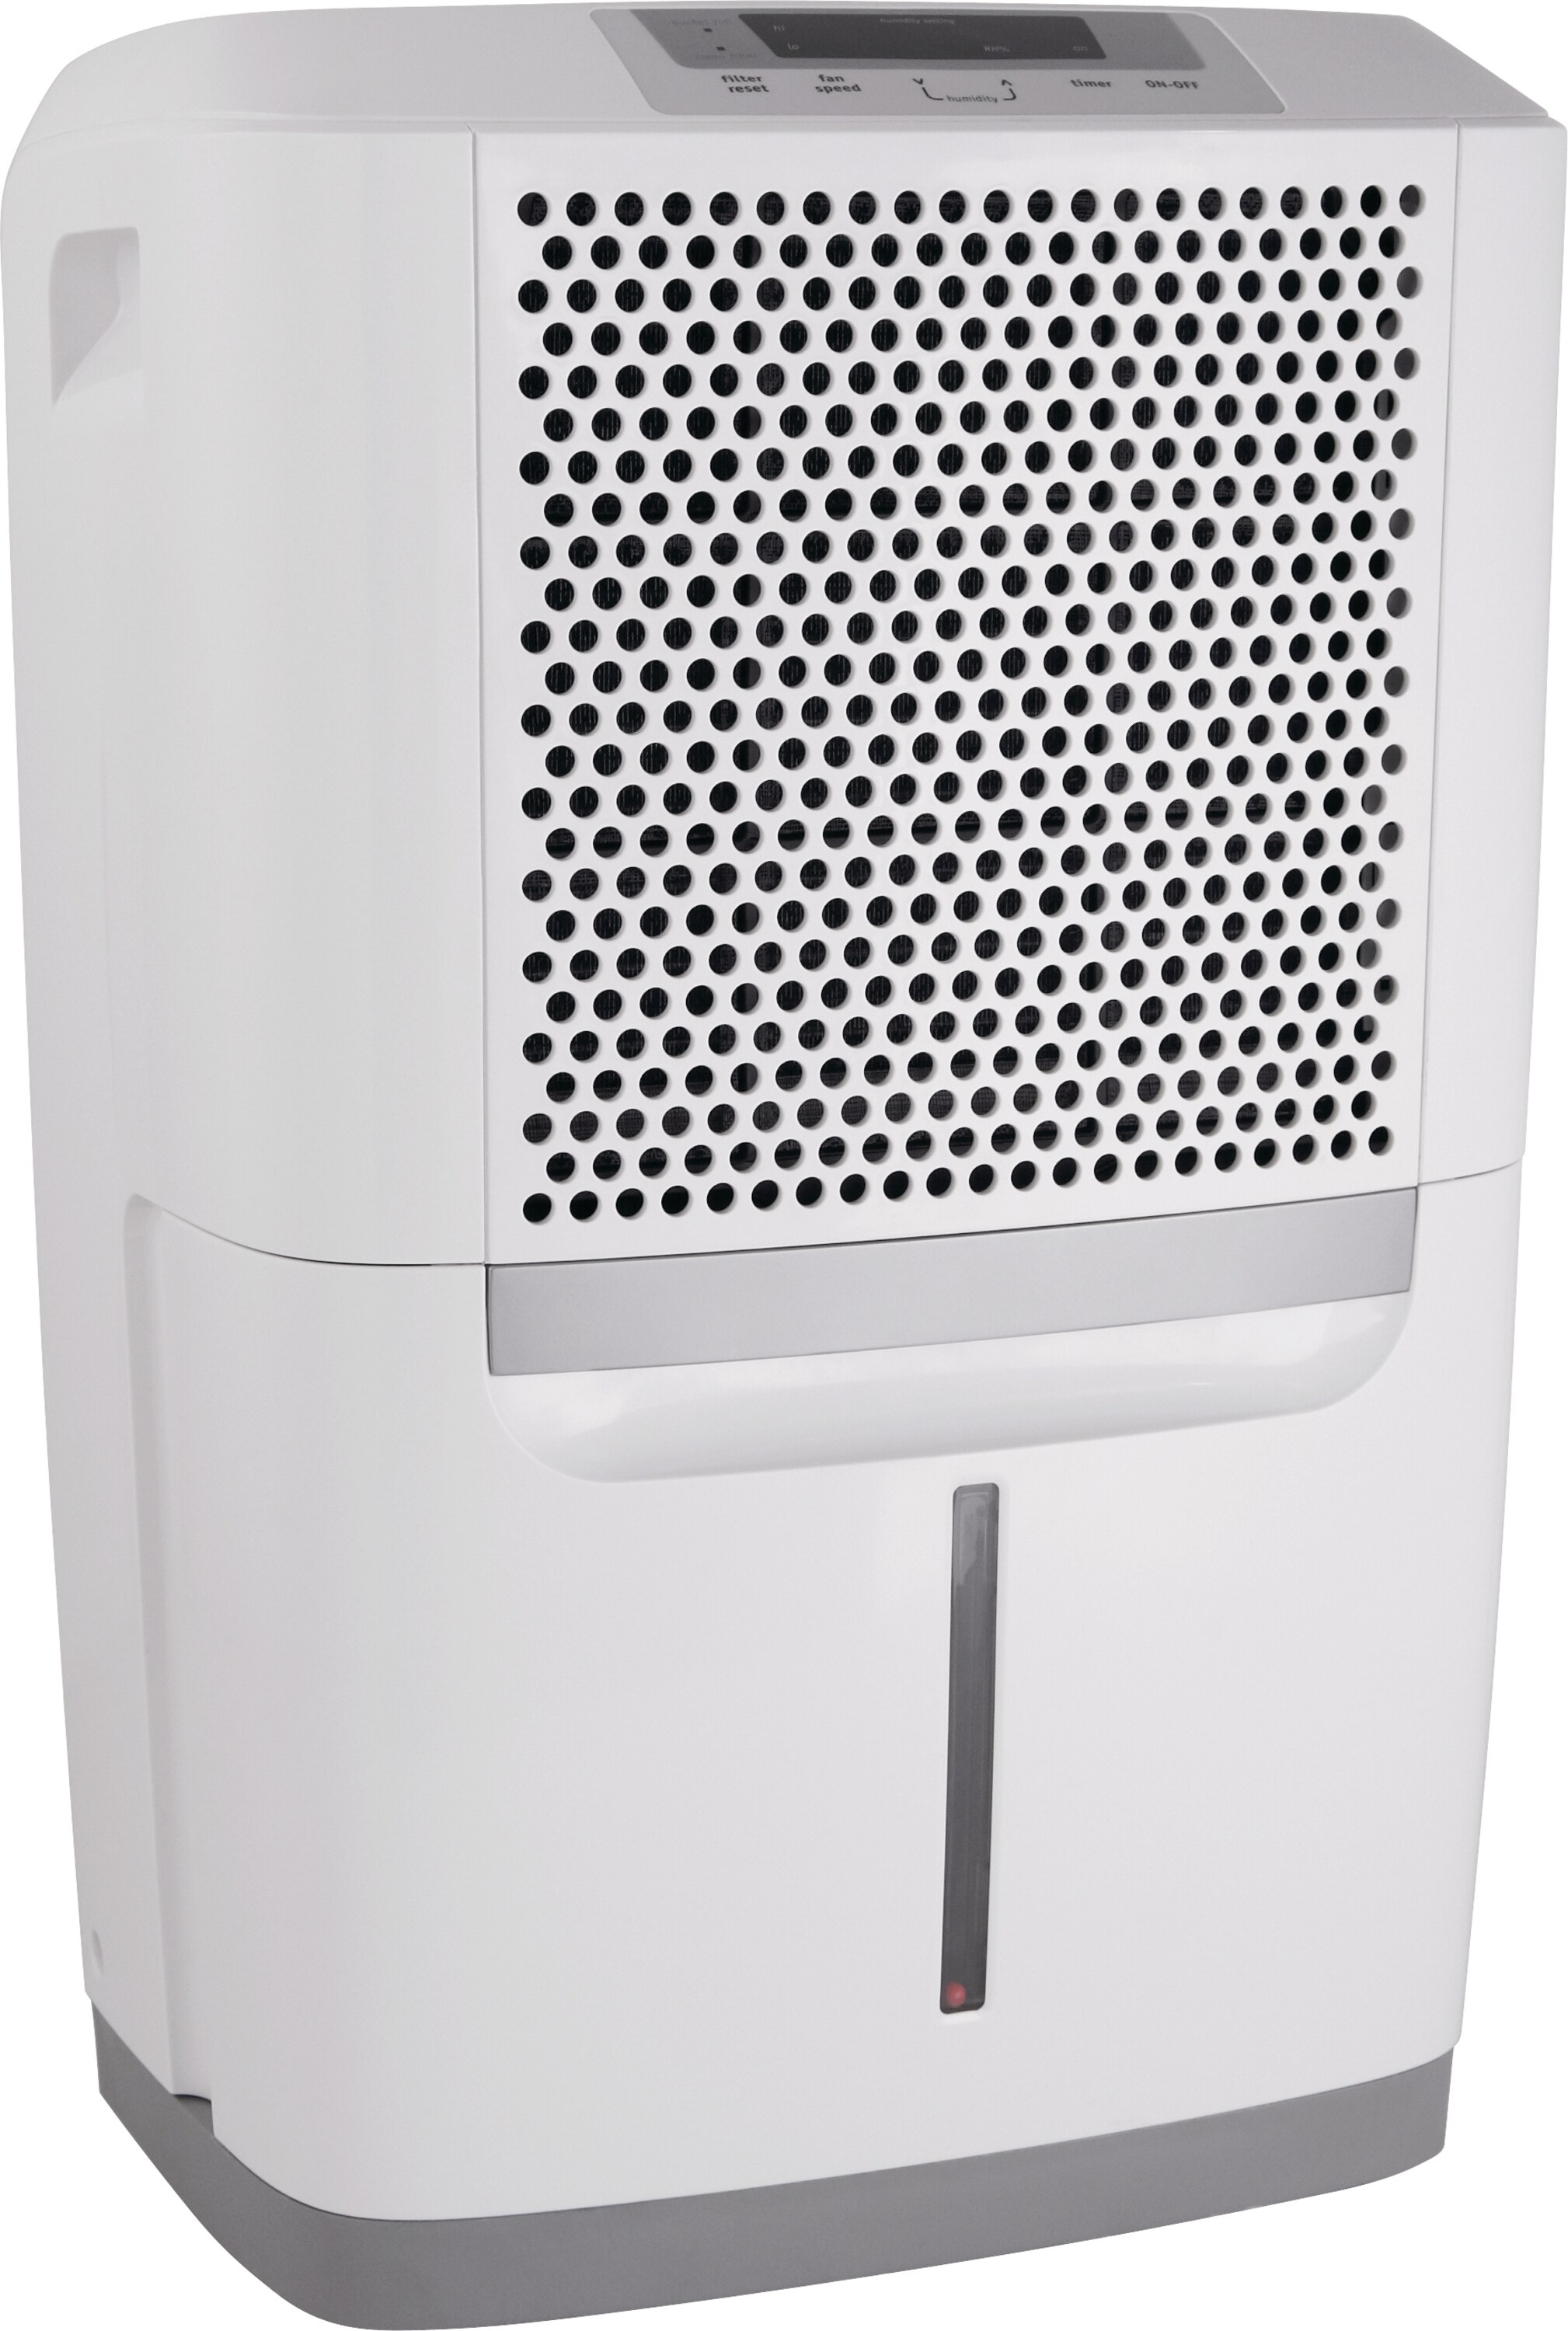 Model: FAD704DWDE | 70 Pint Capacity Dehumidifier